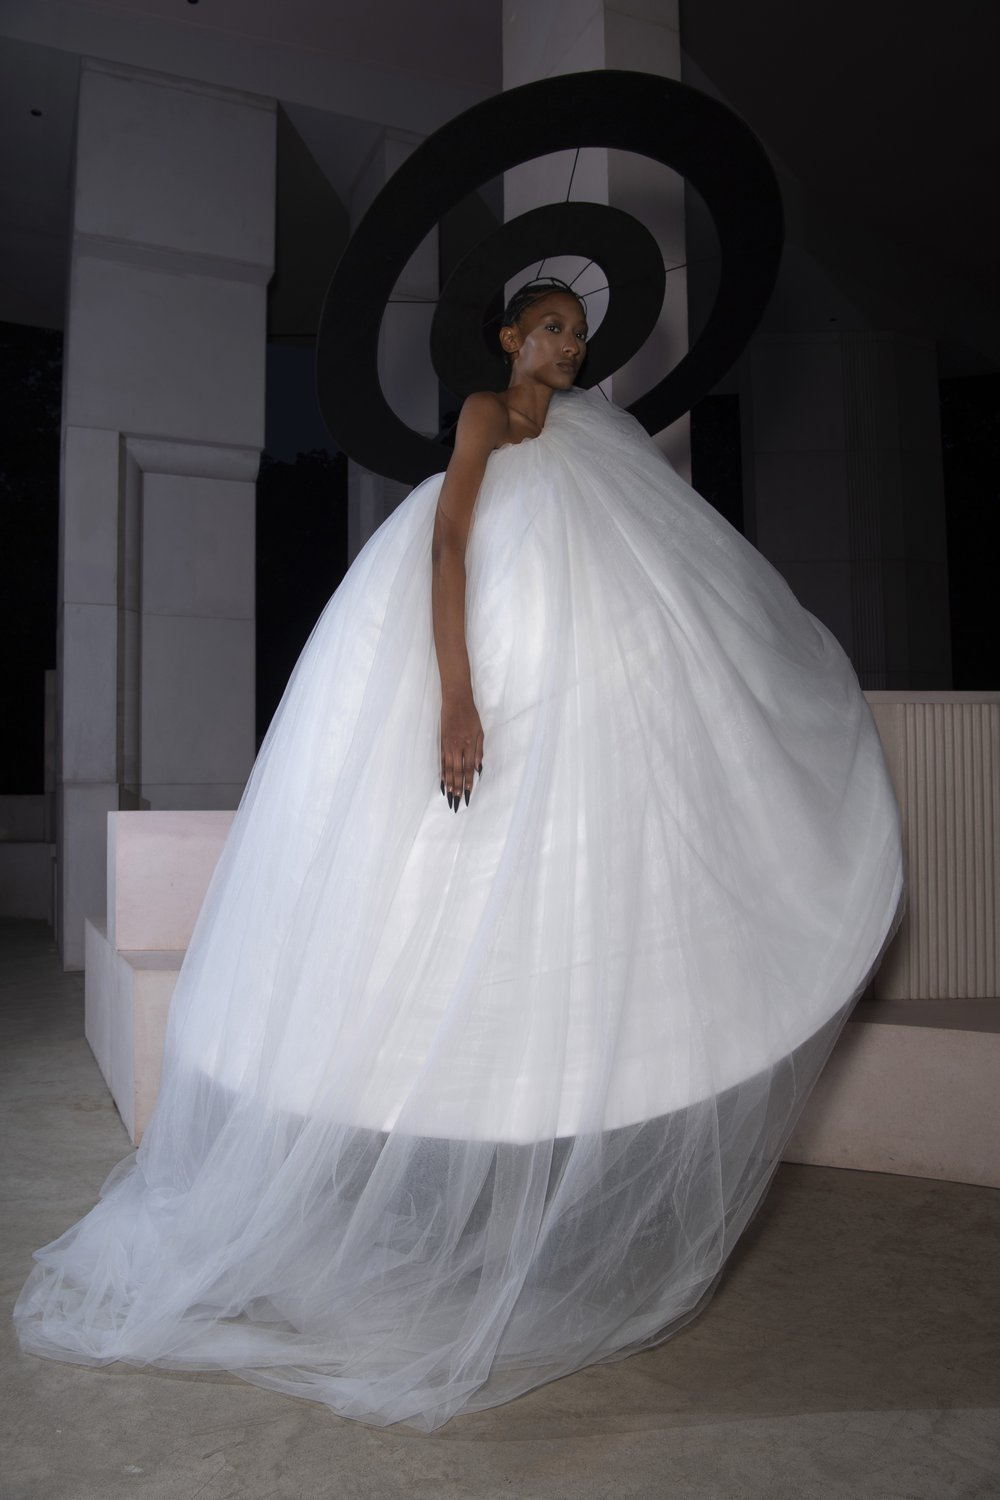 A model wears a demi-couture bridal gown made from Oxfam pre-loved bridal wear and a black halo.